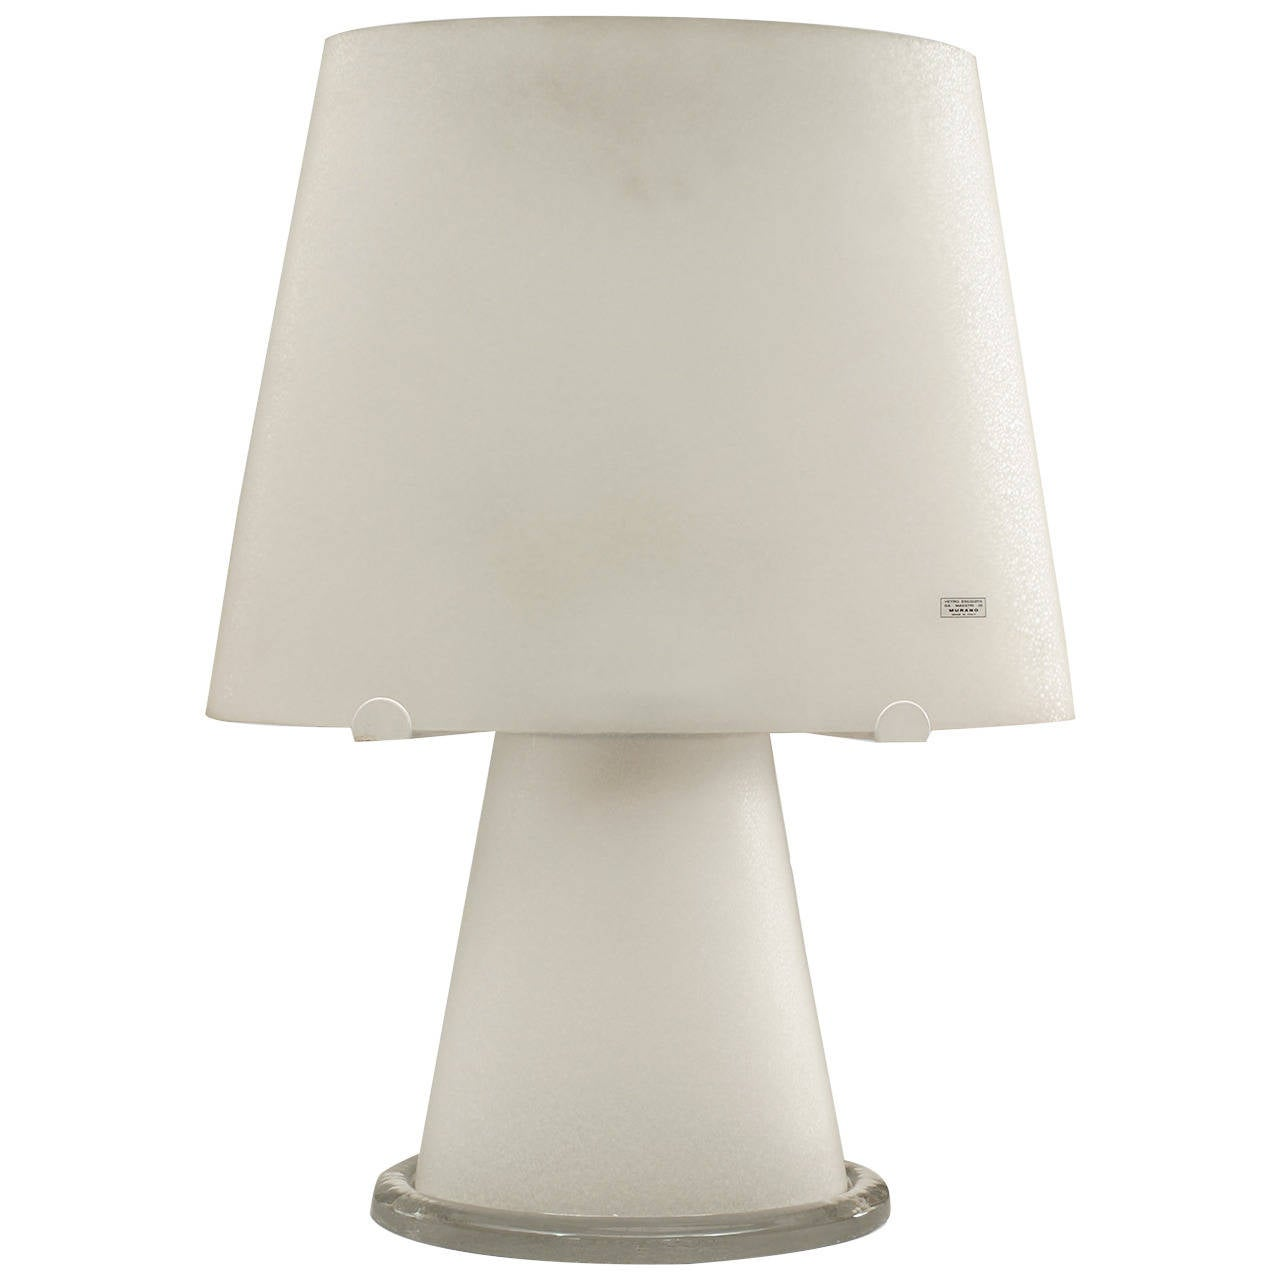 italian murano frosted glass table lamp for sale at 1stdibs. Black Bedroom Furniture Sets. Home Design Ideas